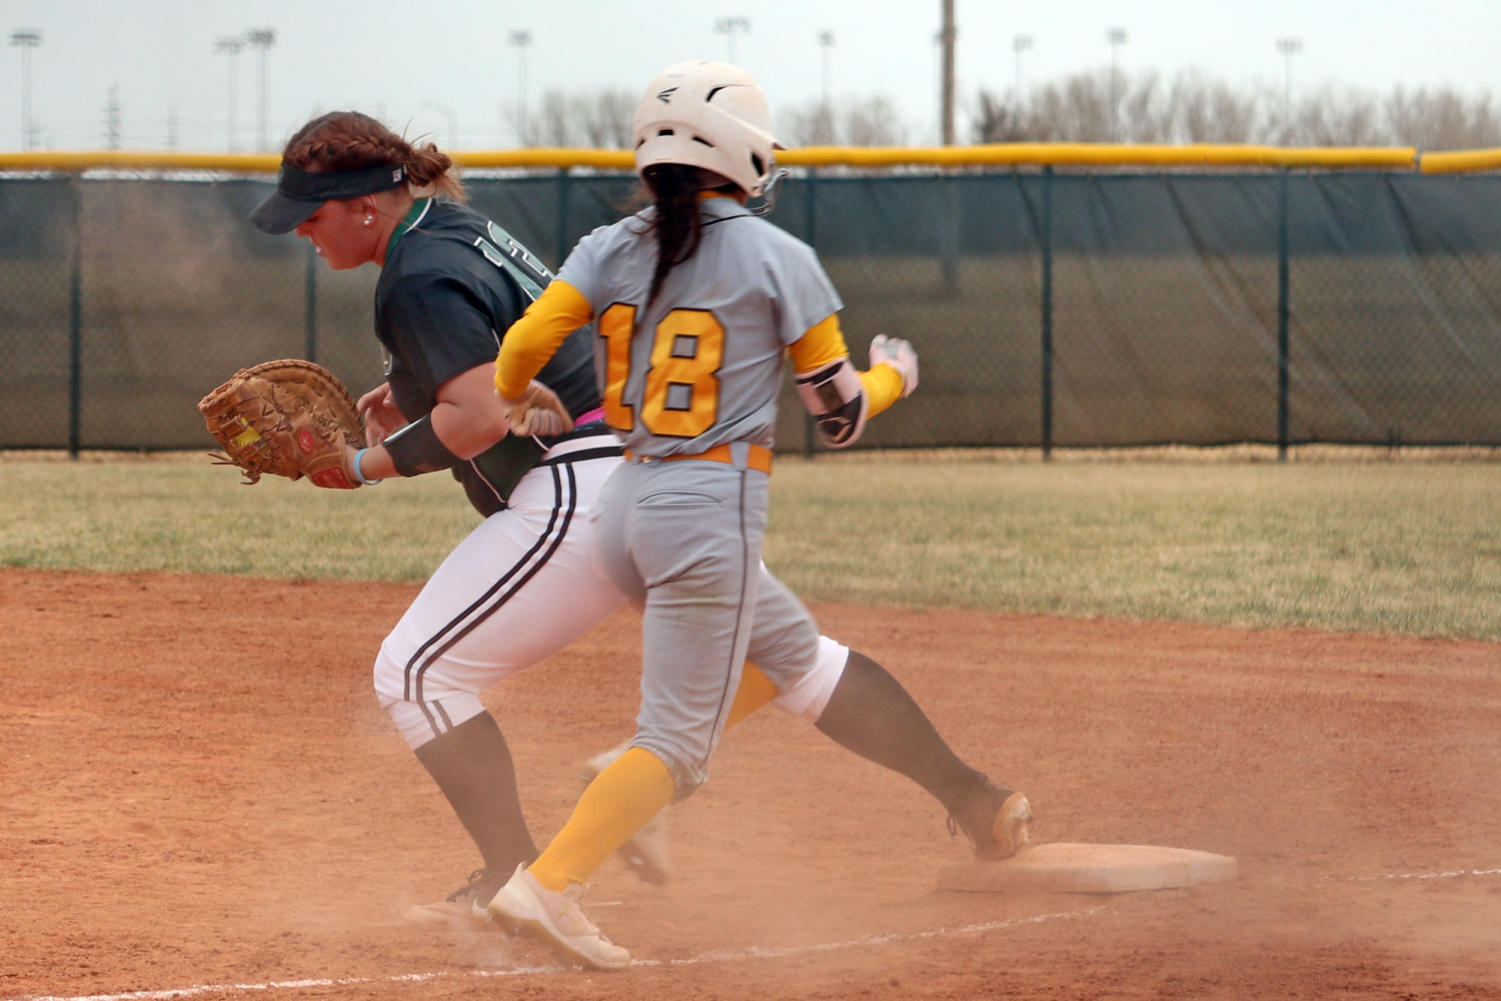 Freshman+first+baseman%2C+Madeline+Owen+tags+her+base+to+get+a+GCCC+opponent+out+for+SCCC%27s+third+out+of+the+inning.